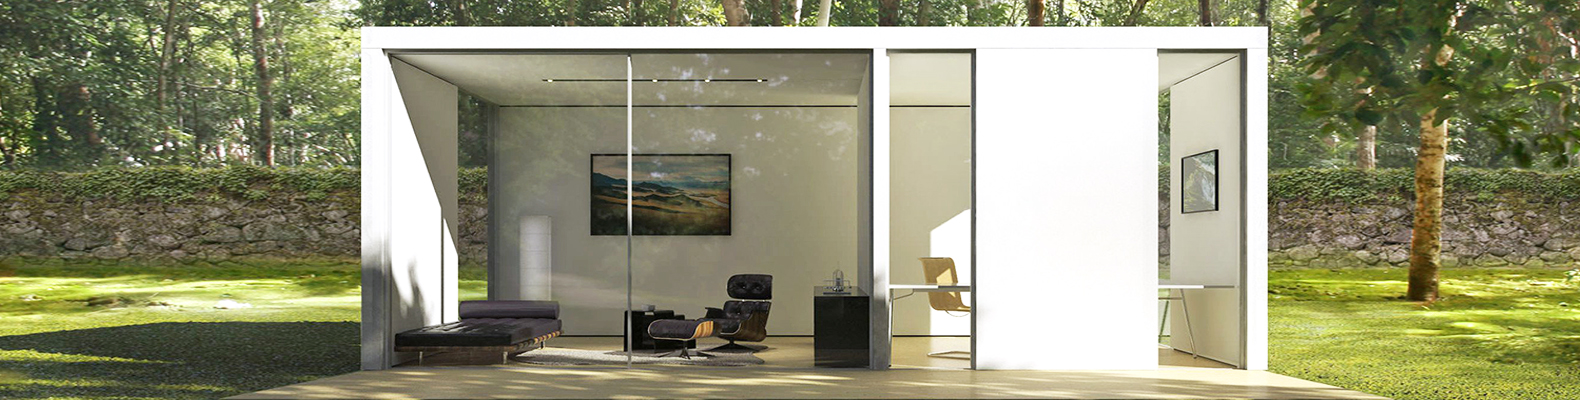 Cover's $50k algorithmic tiny houses are 80% more efficient than conventional homes